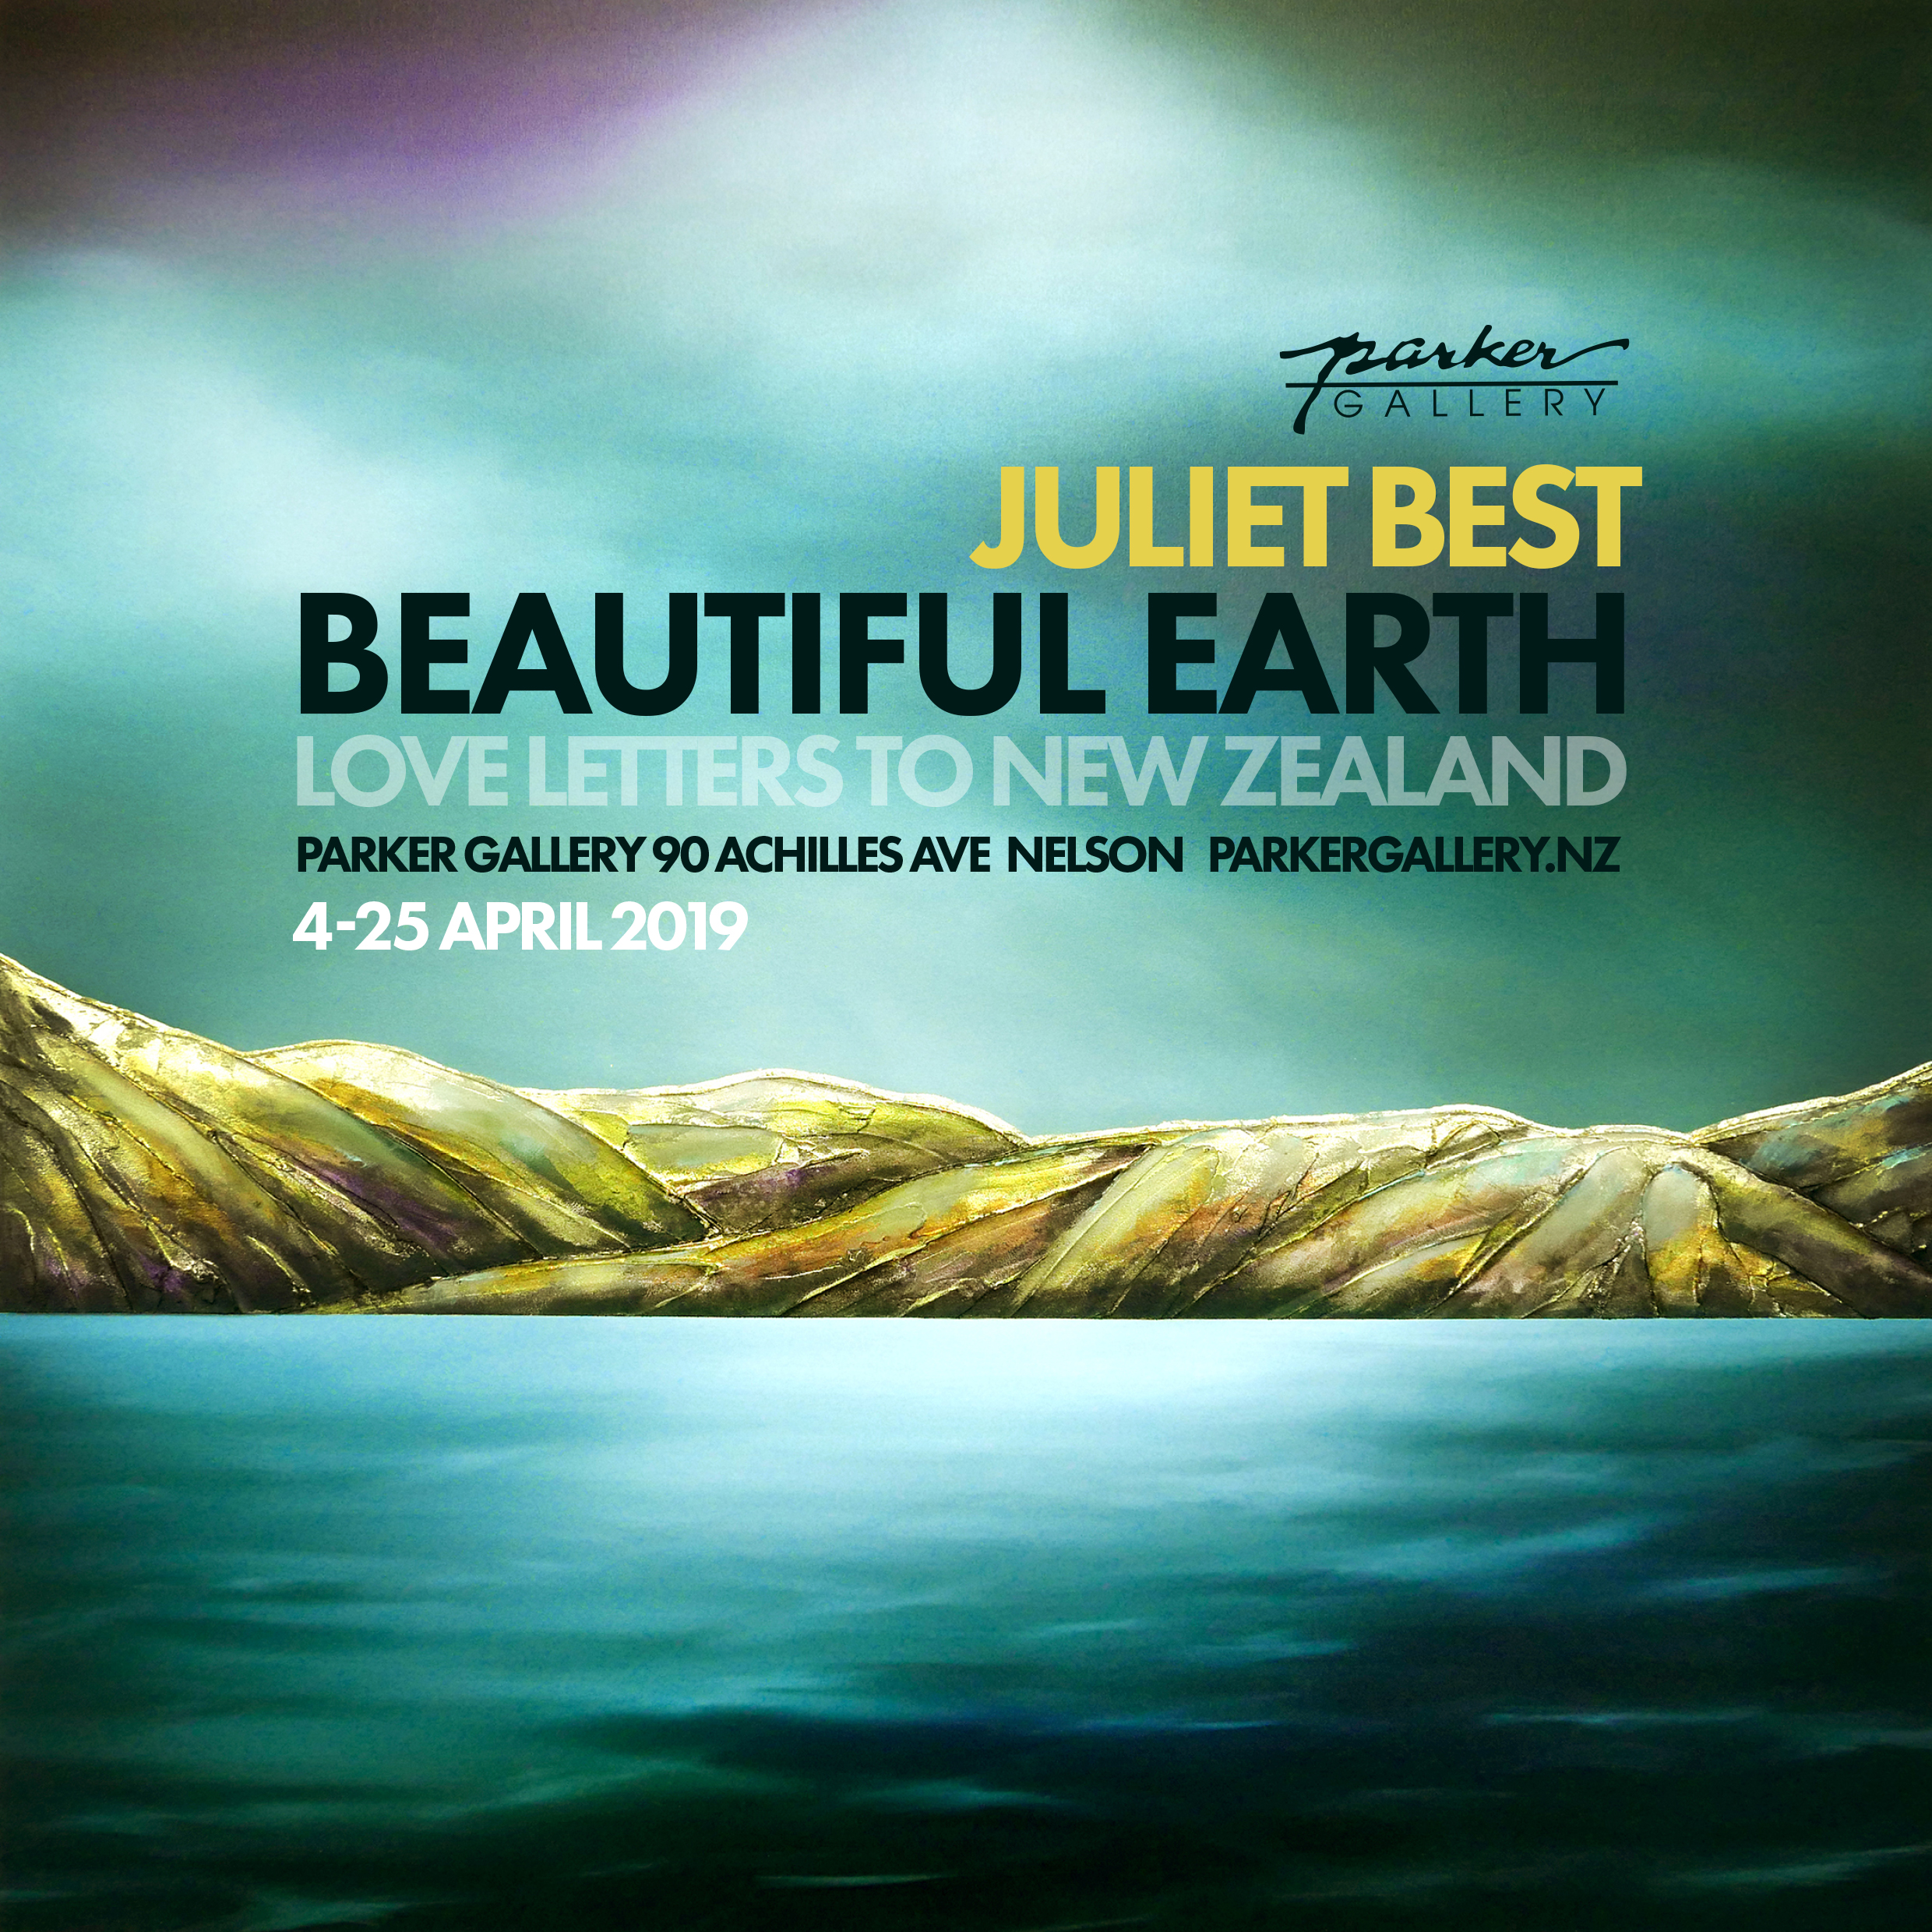 Beautiful Earth - Juliet Best.jpg